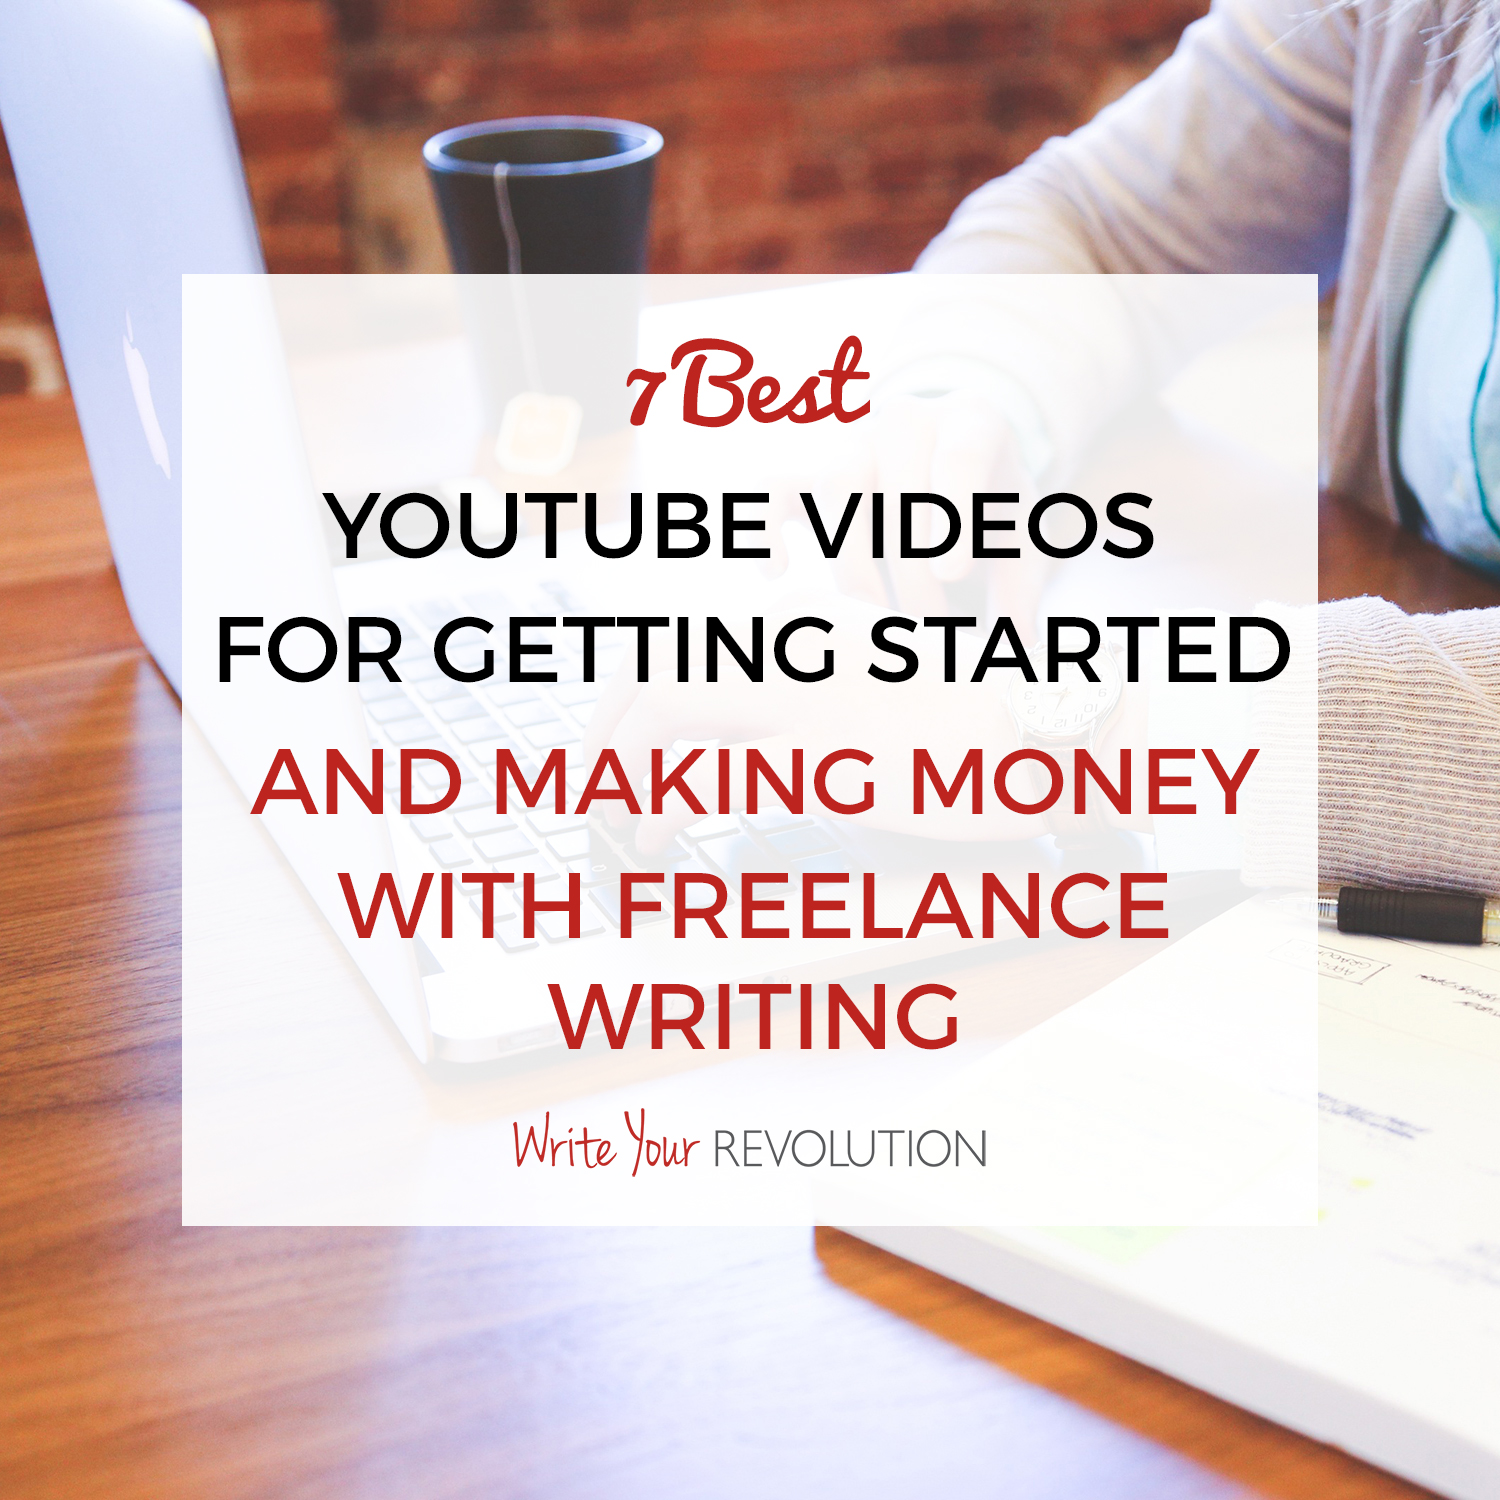 7 Best YouTube Videos for Getting Started and Making Money with Freelance Writing